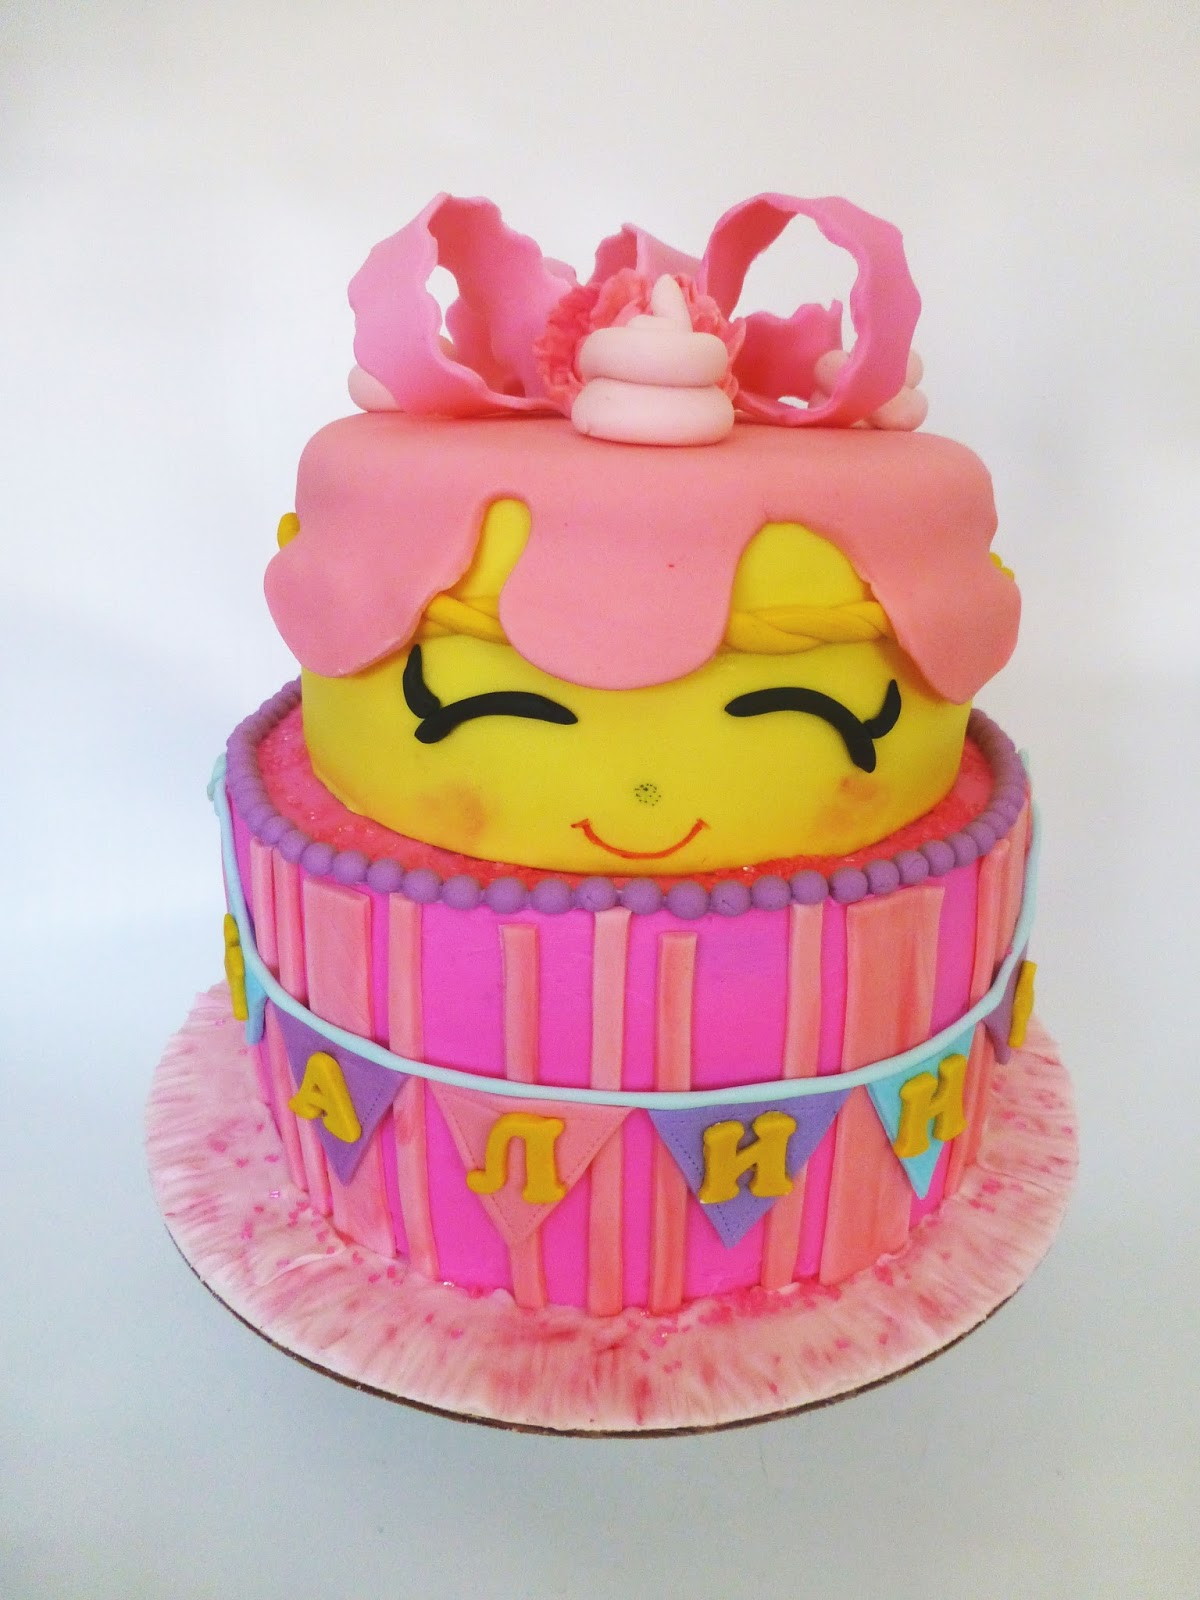 The Icing Artist Shopkins Cake